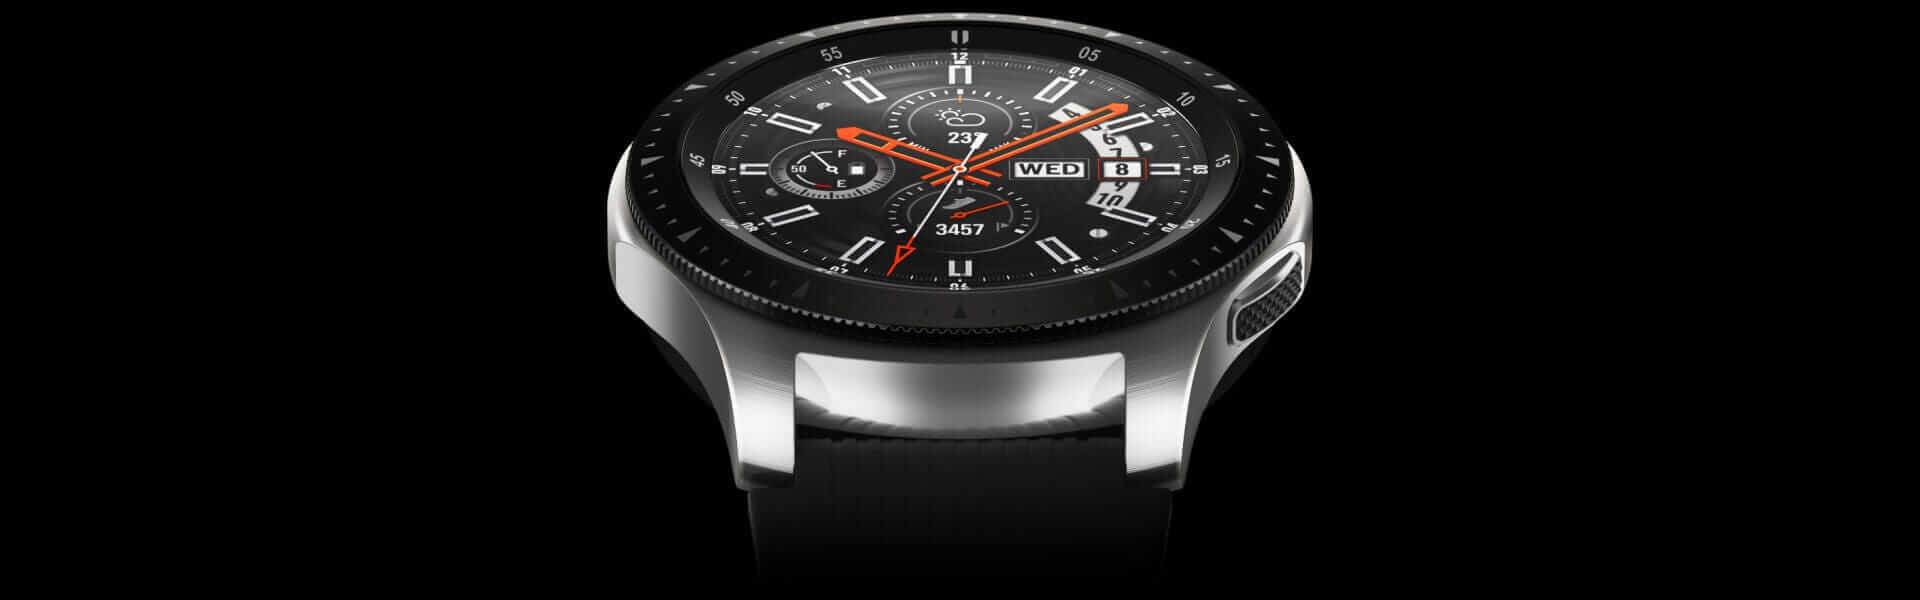 Фото 2 Samsung Galaxy Watch